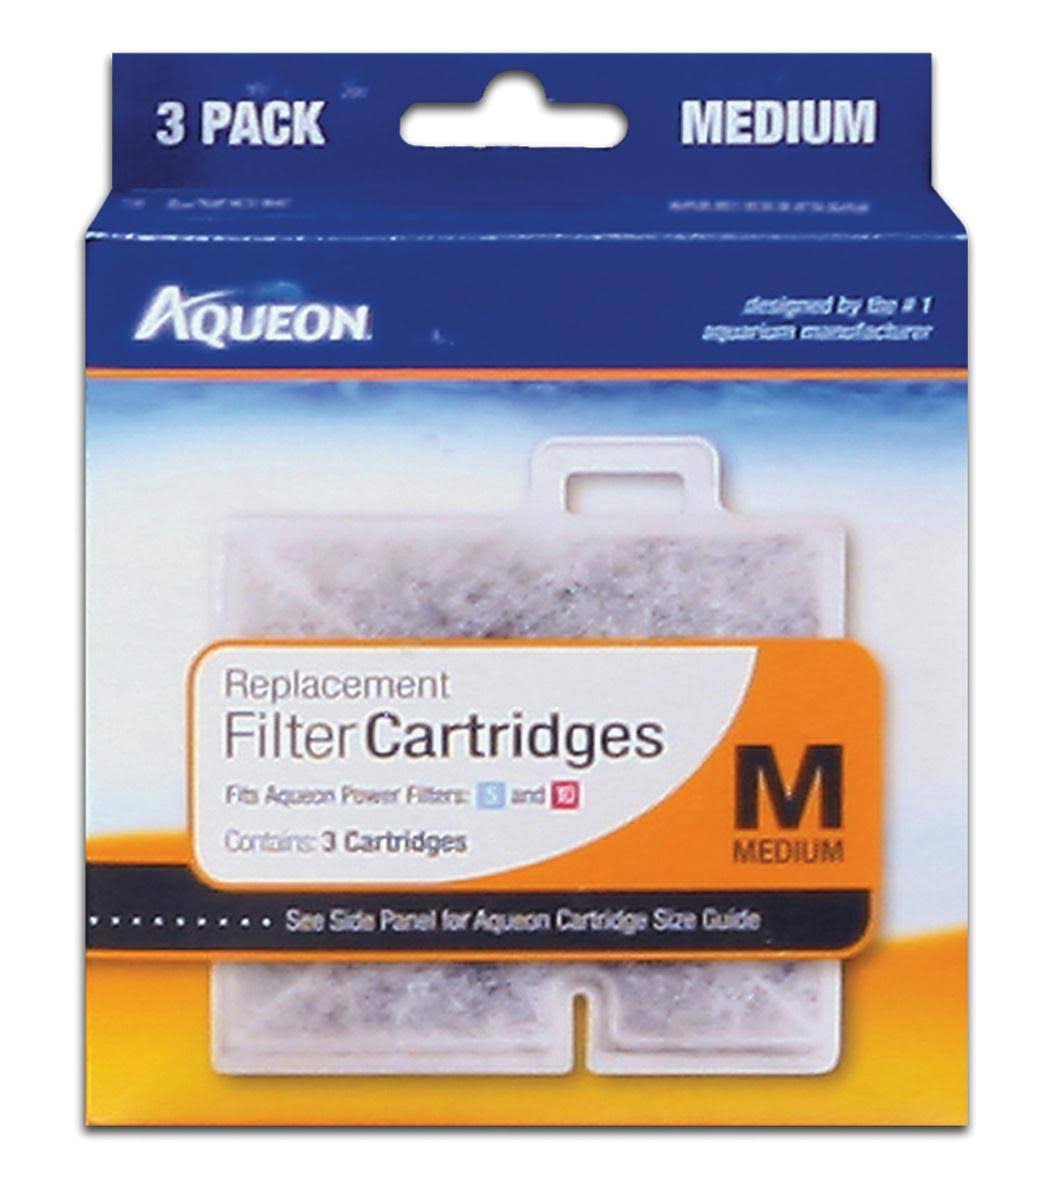 Aqueon Replacement Filter Cartridges - Medium, 3 Pack